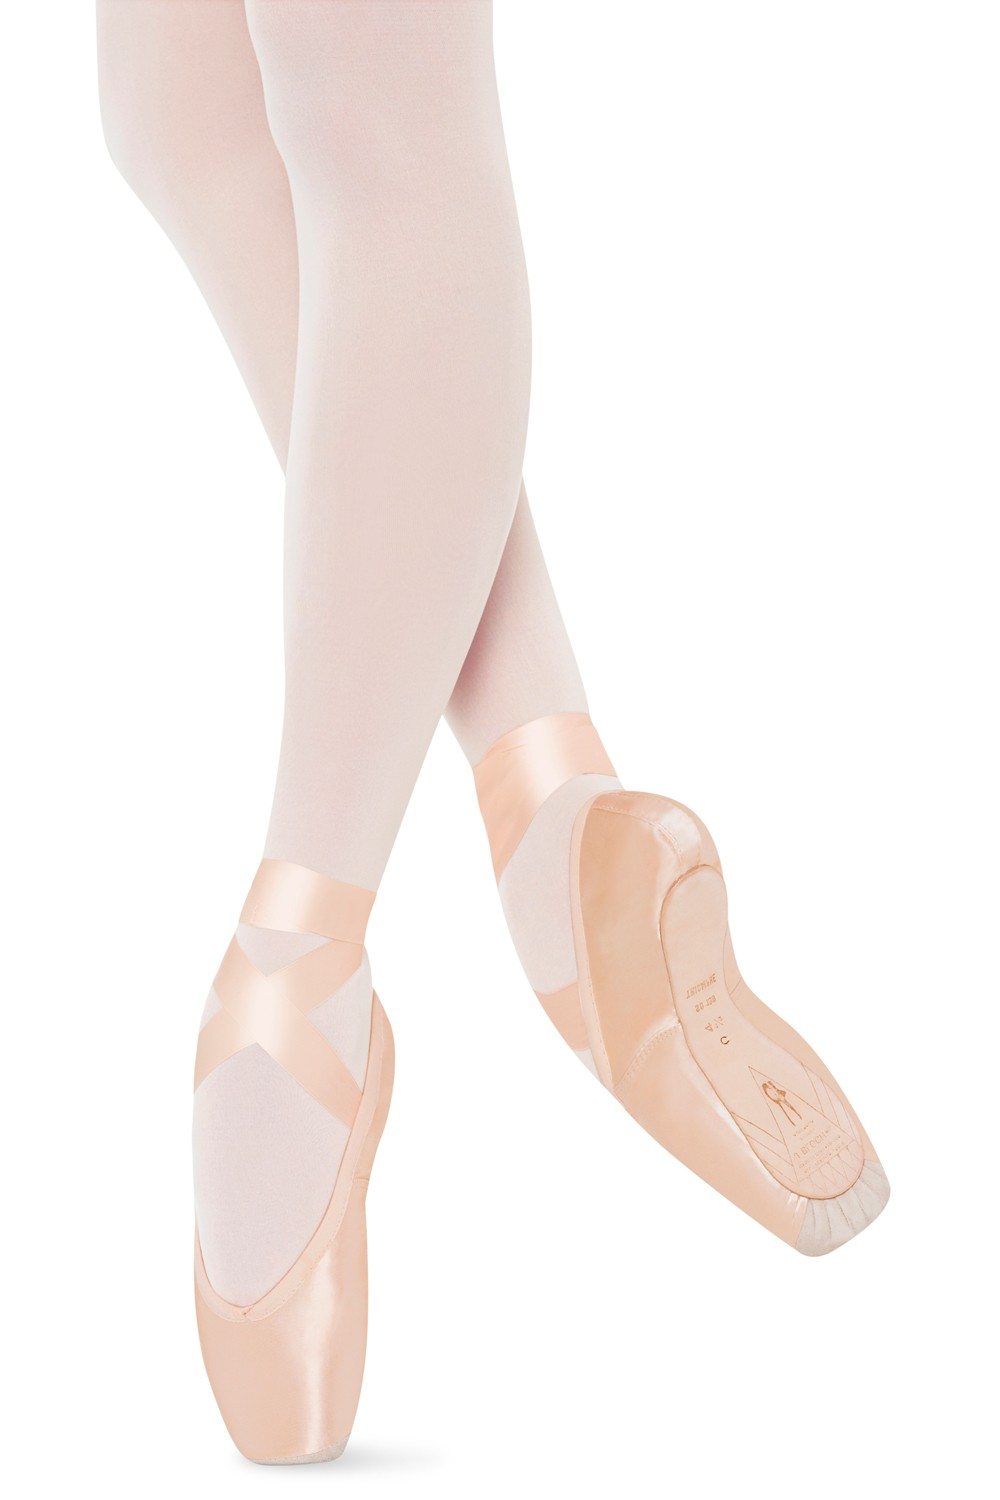 Triomphe - Modello Ultraleggero Pointe Shoes